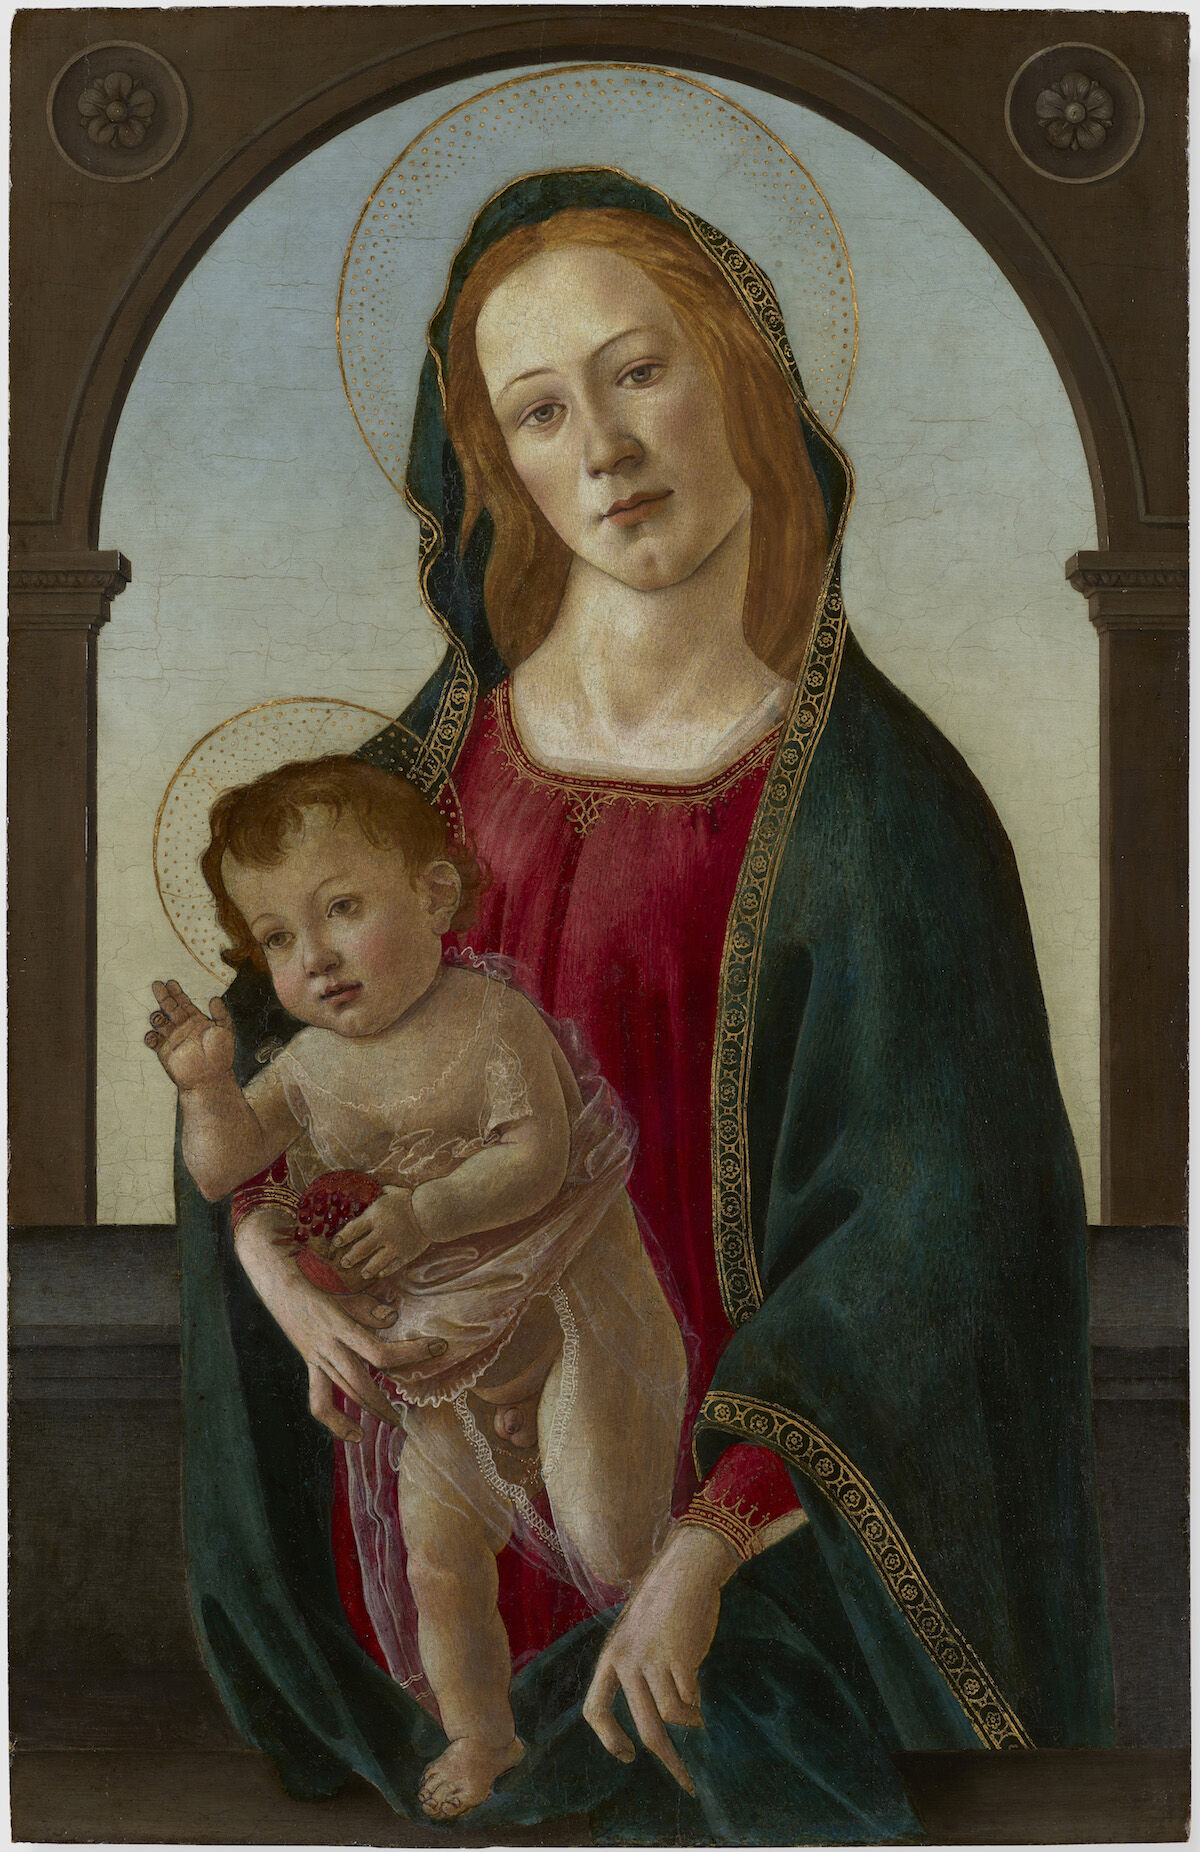 The Madonna and Child (1480s), a work now attributed in part to Botticelli. Courtesy National Museum Cardiff.